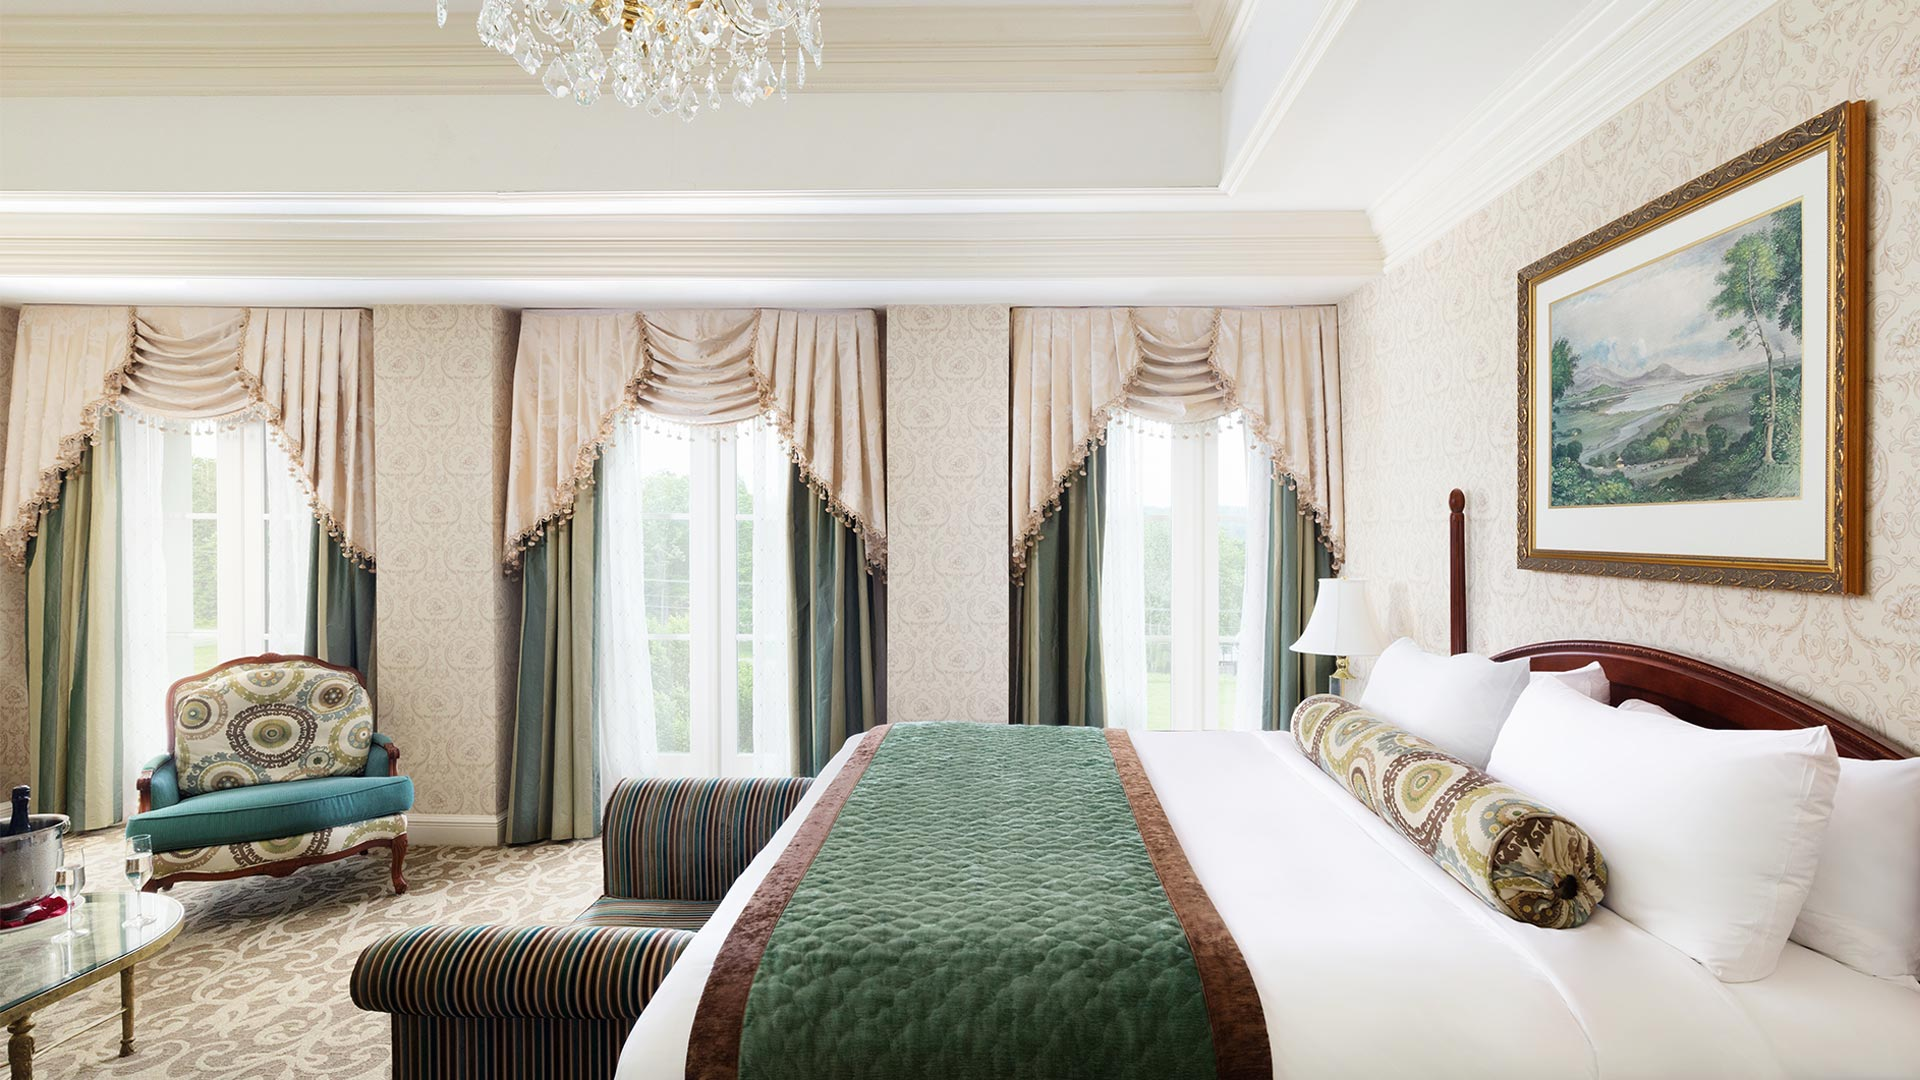 interior shot of The Chateau's Junior King Suite bedroom. There is a king bed with green and white linens with a sitting bench on the end of the bed. There is a sitting area and three large windows overlooking the resort grounds.